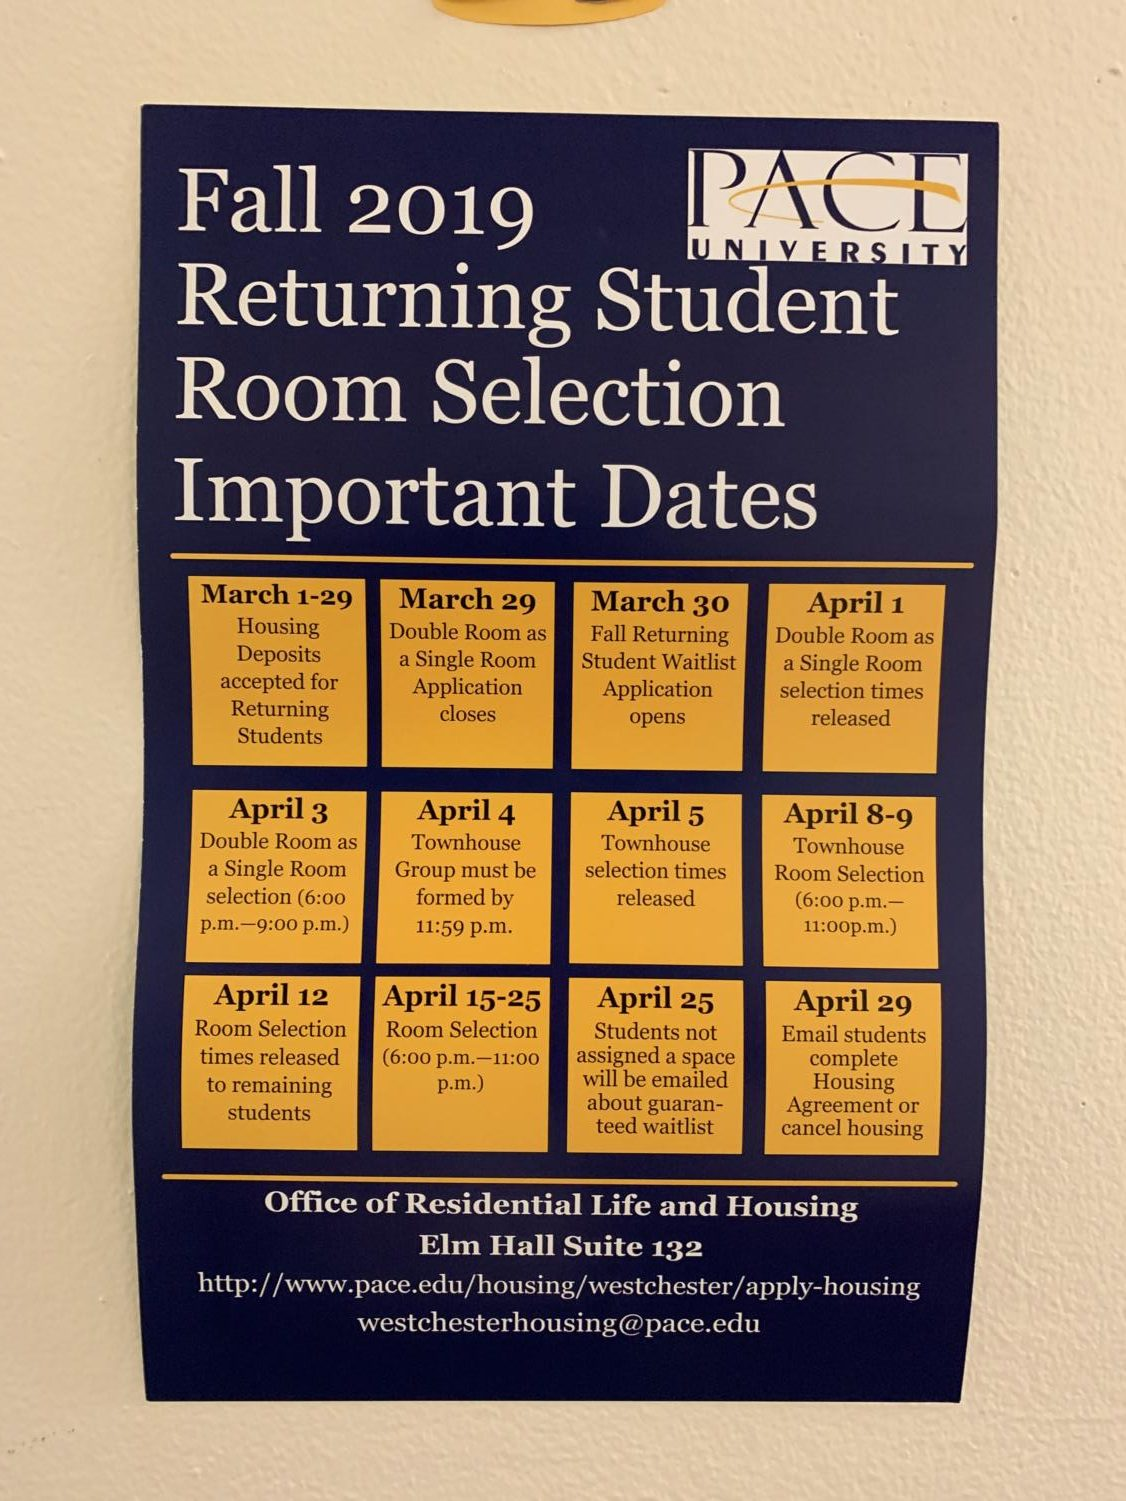 All information regarding housing selections and times are on these poster up around campus. Photo taken by Josiah Darnell.